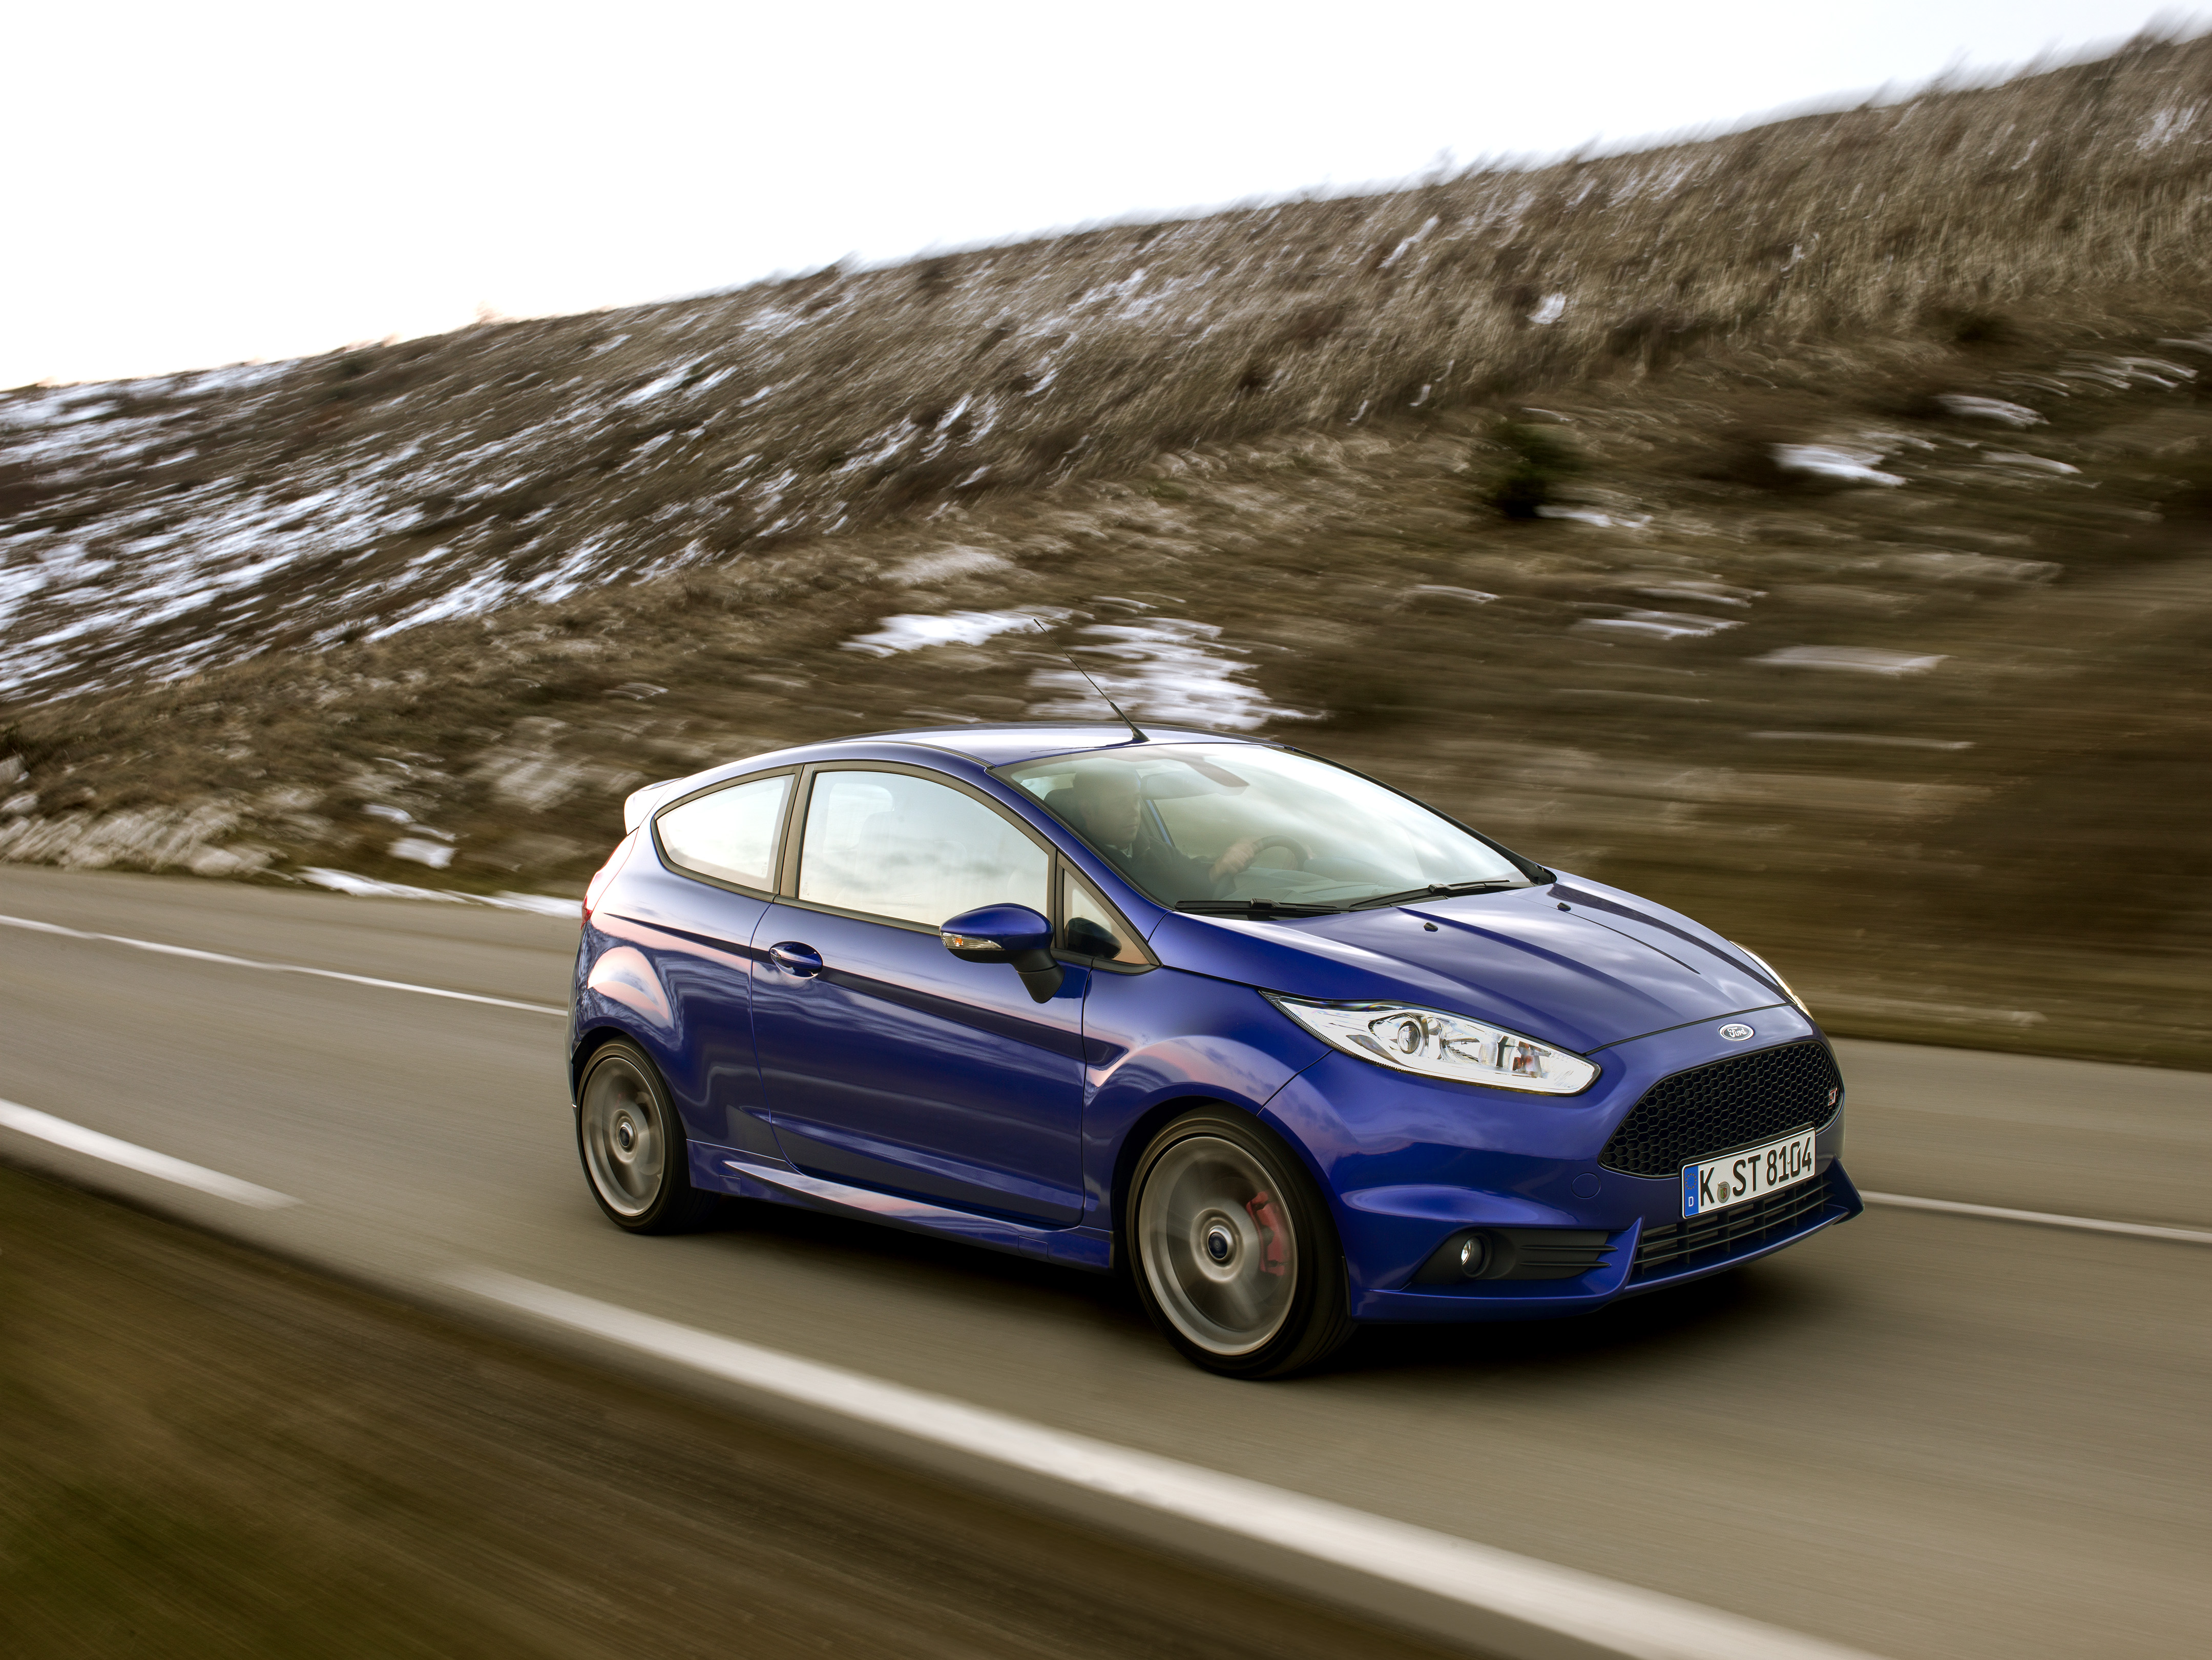 the motoring world 2017 ford fiesta st has received a kelley blue book 2017 5 year cost to own. Black Bedroom Furniture Sets. Home Design Ideas